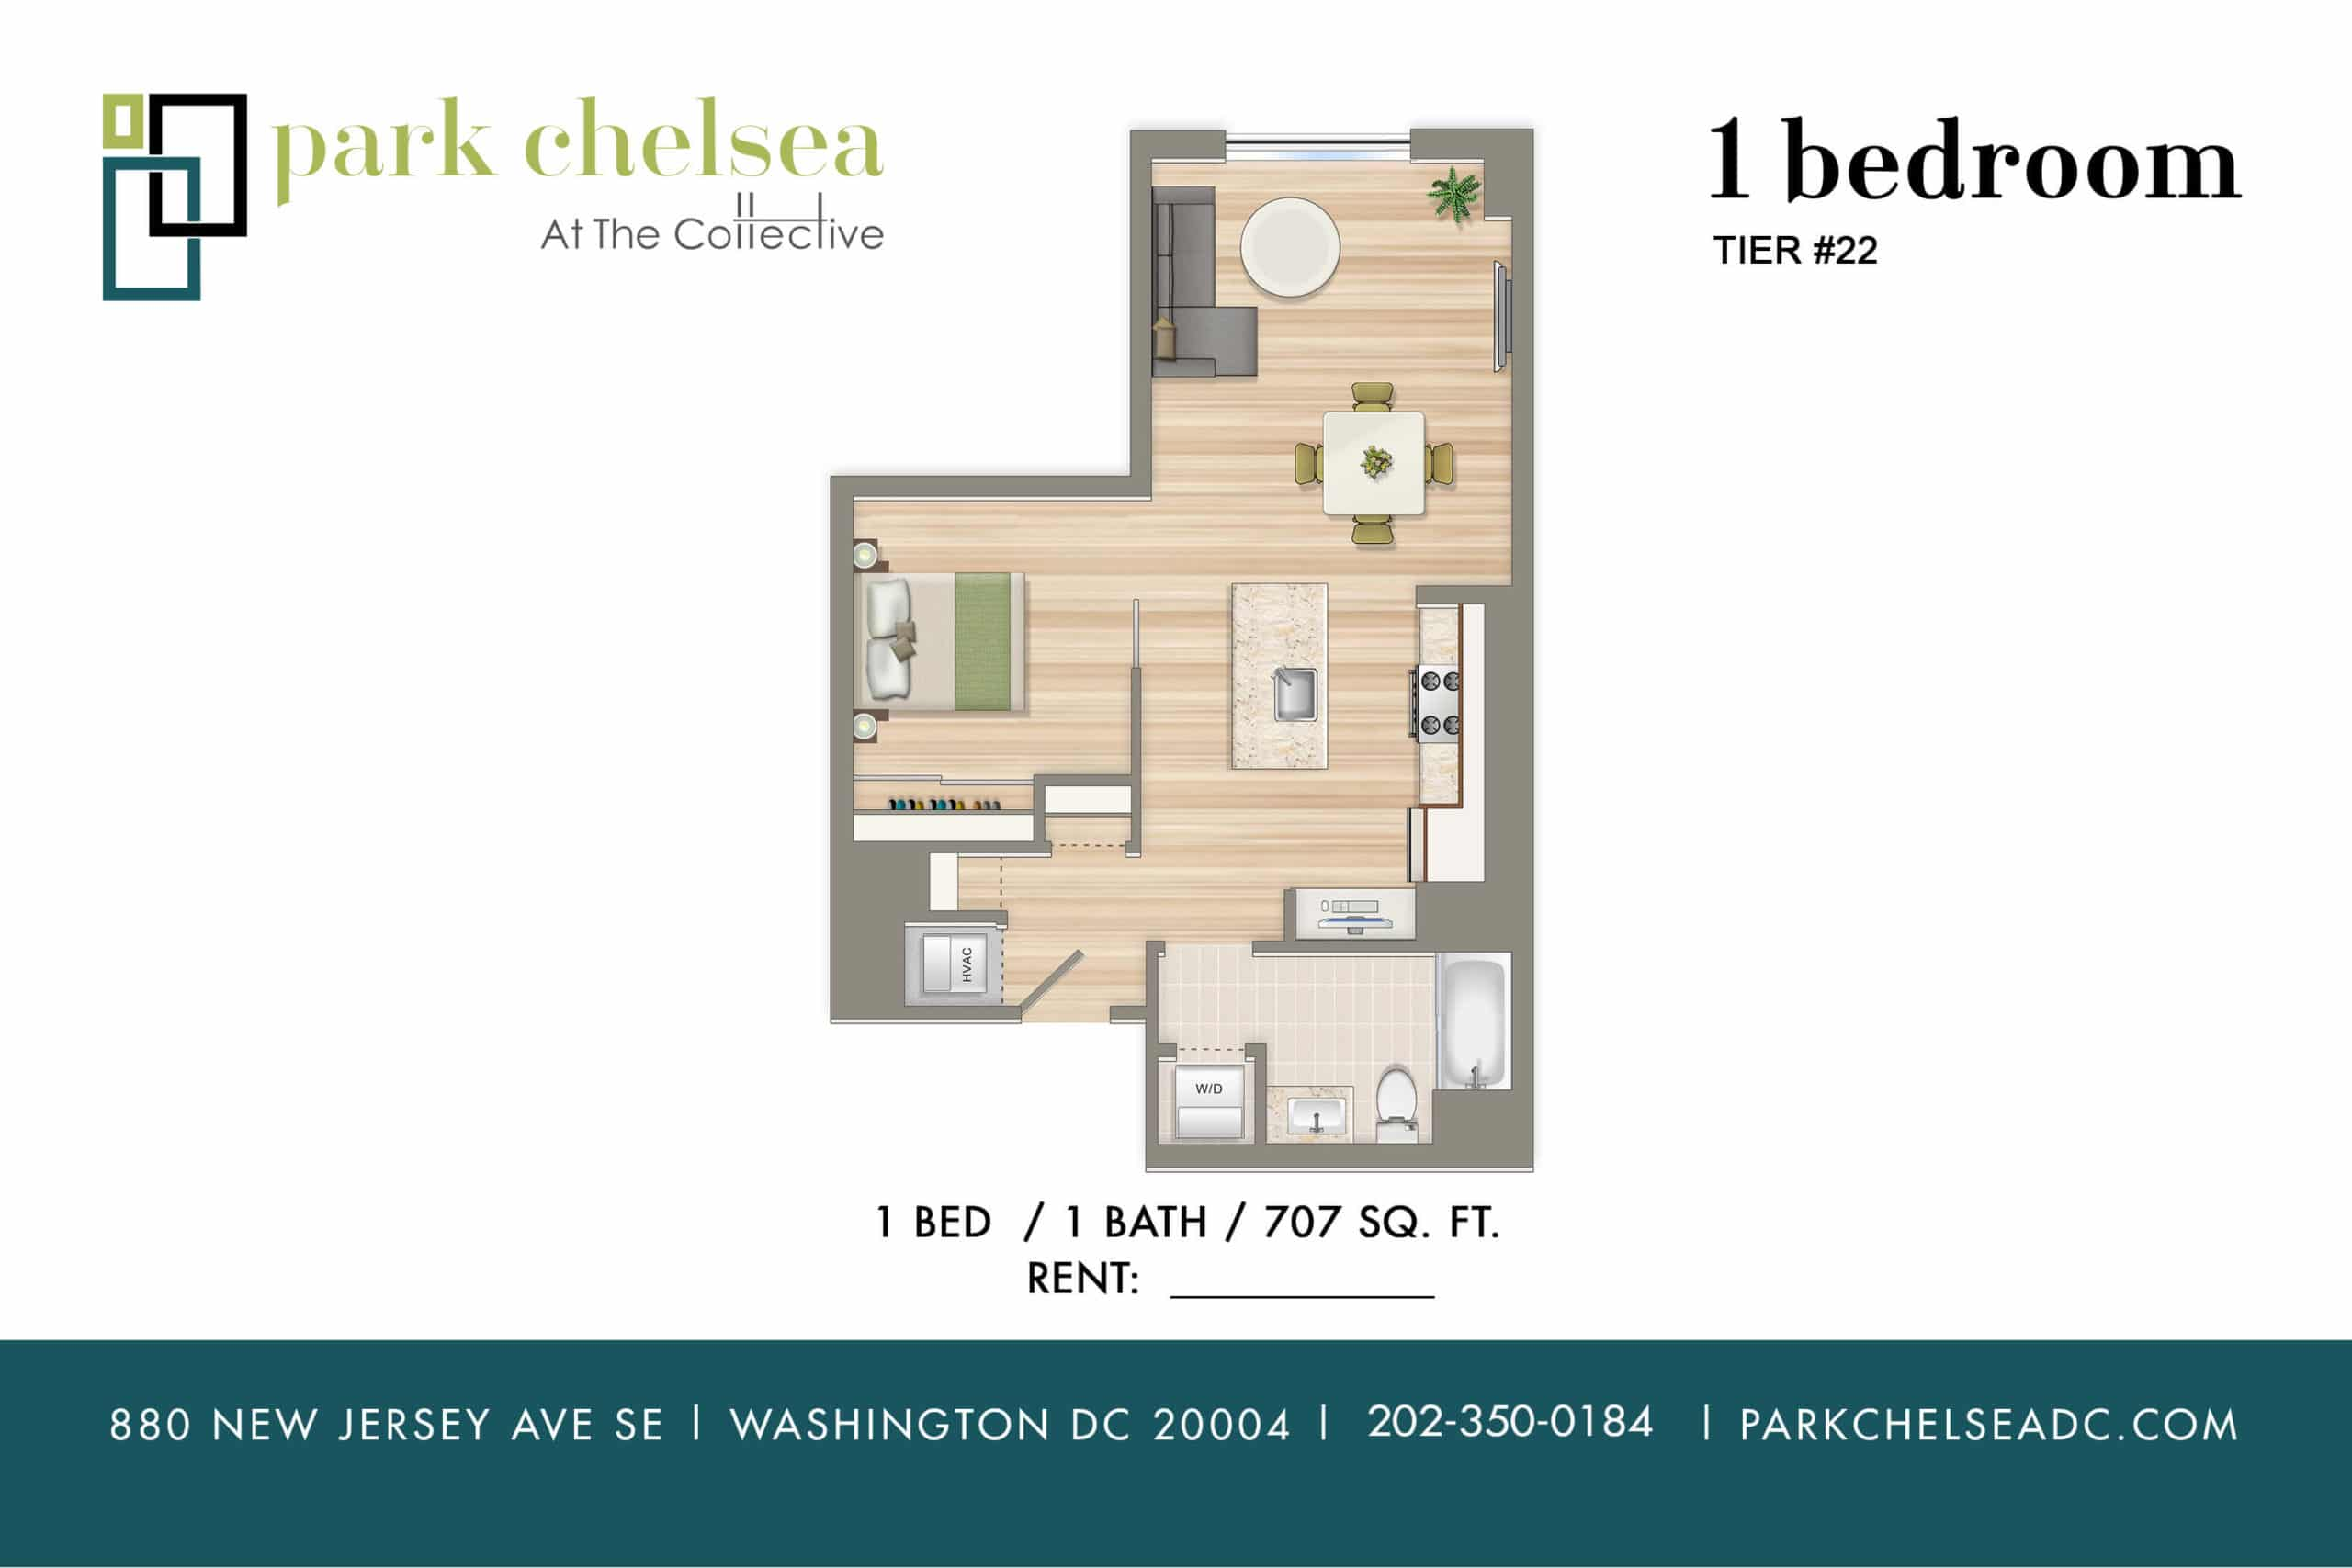 1 Br Apartments In The Capitol Riverfront Navy Yard The Collective